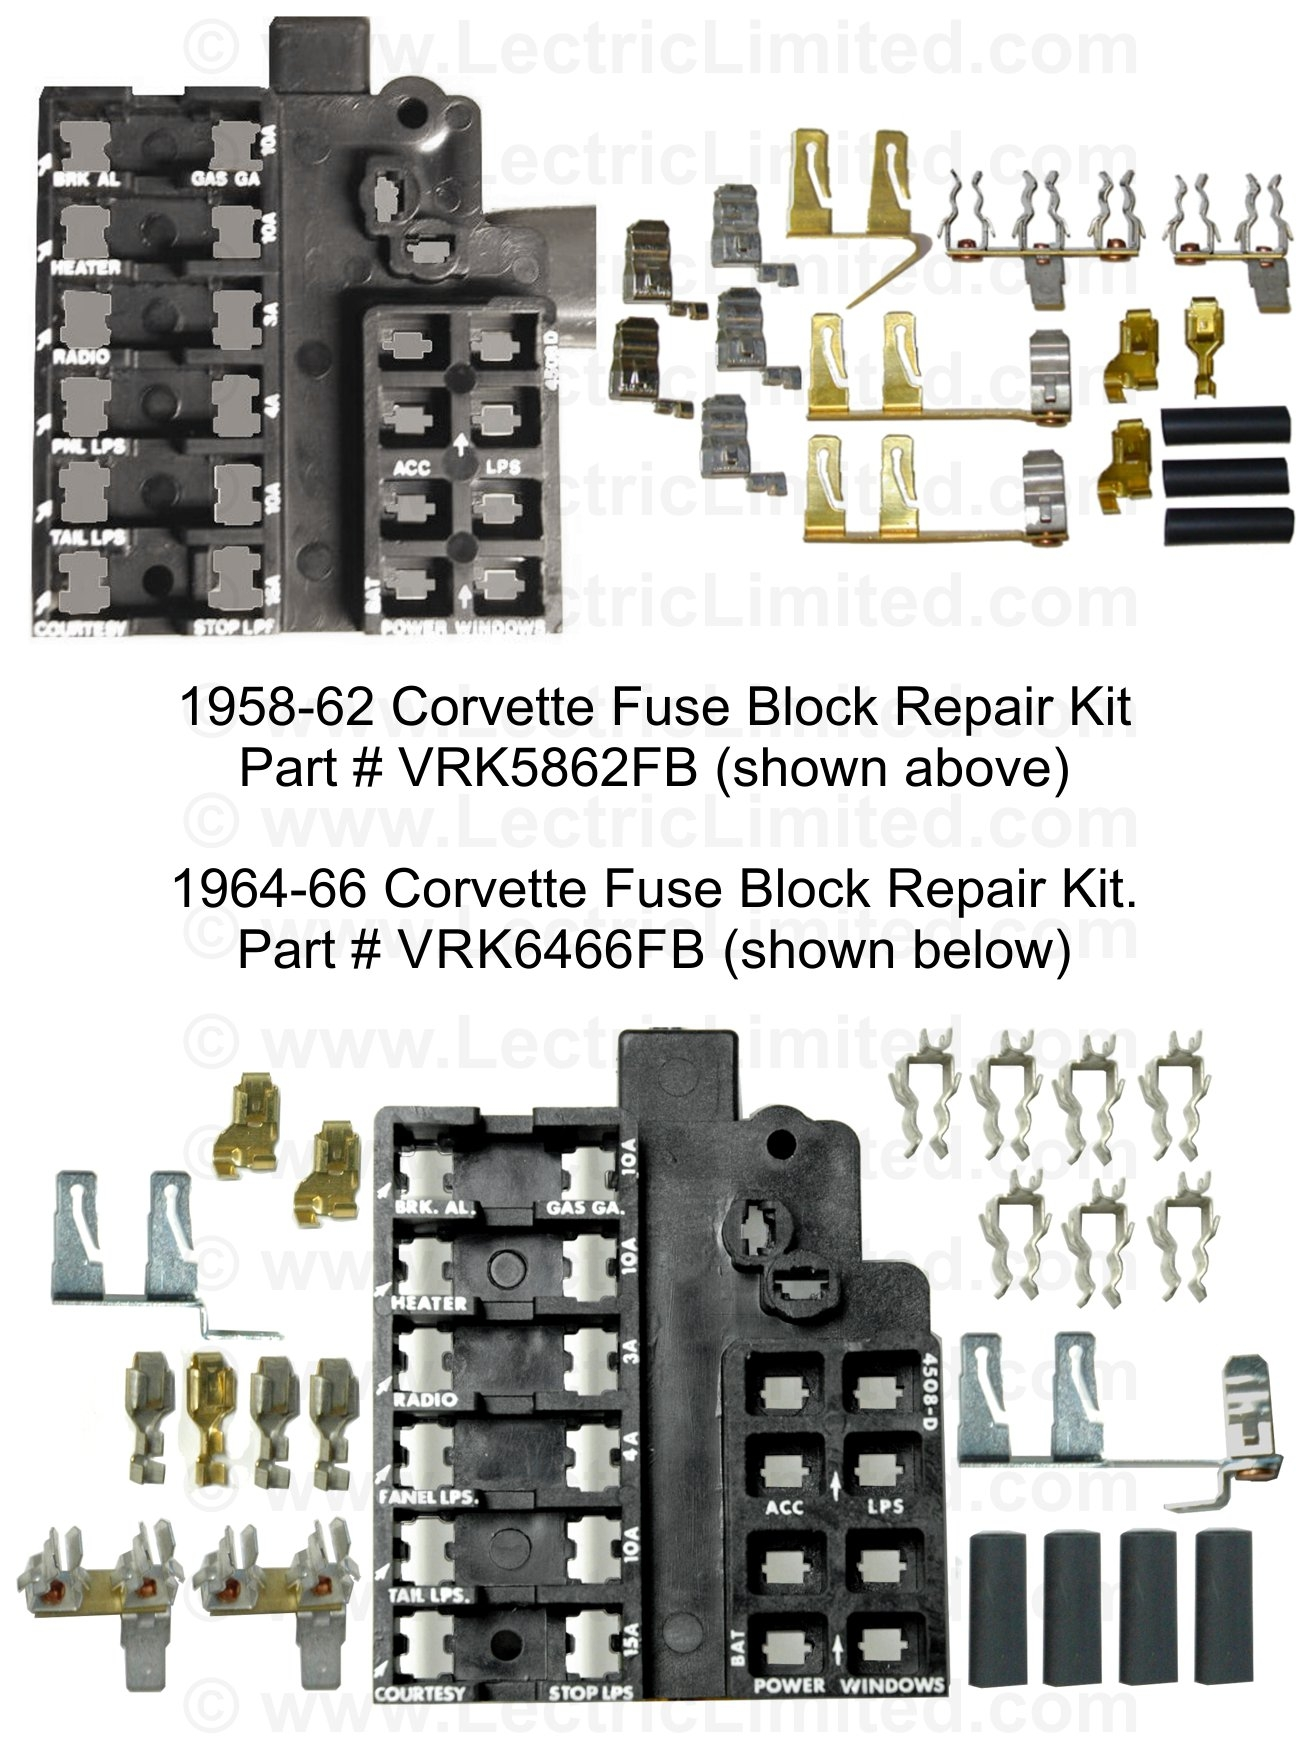 jeep fuse box replacement wiring diagram1967 jeep fuse box wiring diagram1967 jeep fuse box